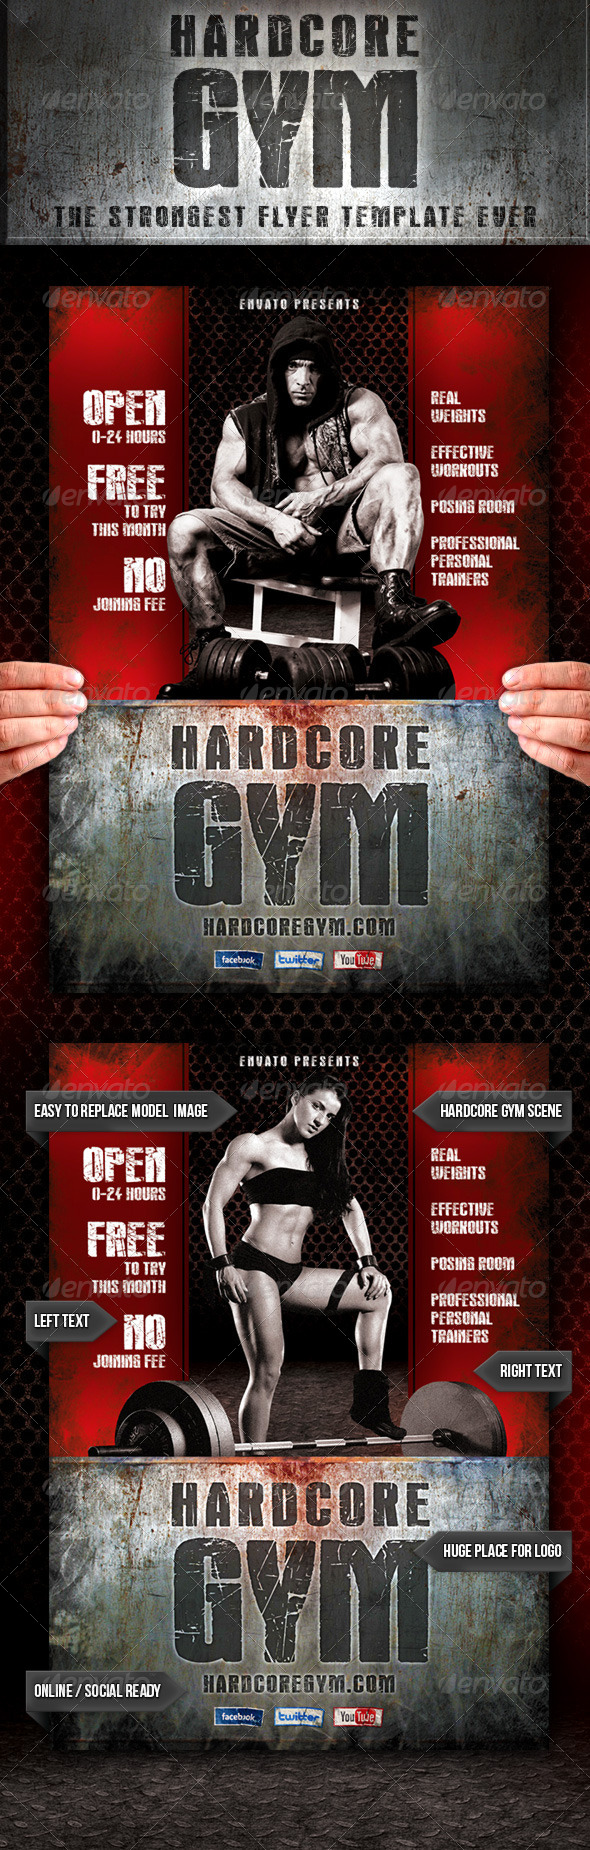 Hardcore Gym Flyer - Commerce Flyers